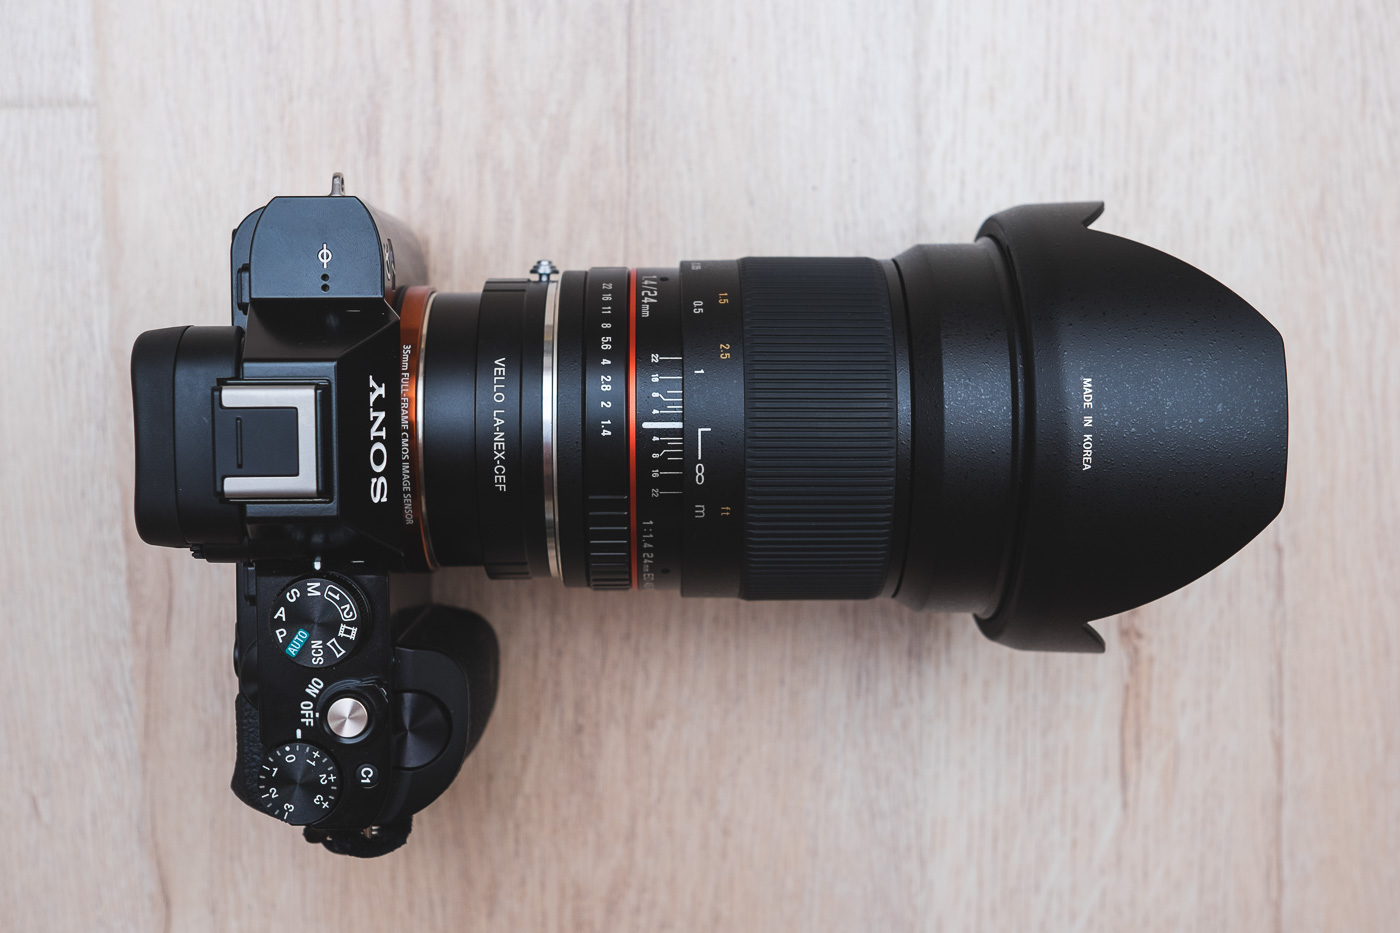 Canon Mount Rokinon 24mm f/1.4 Lens on the Sony a7S